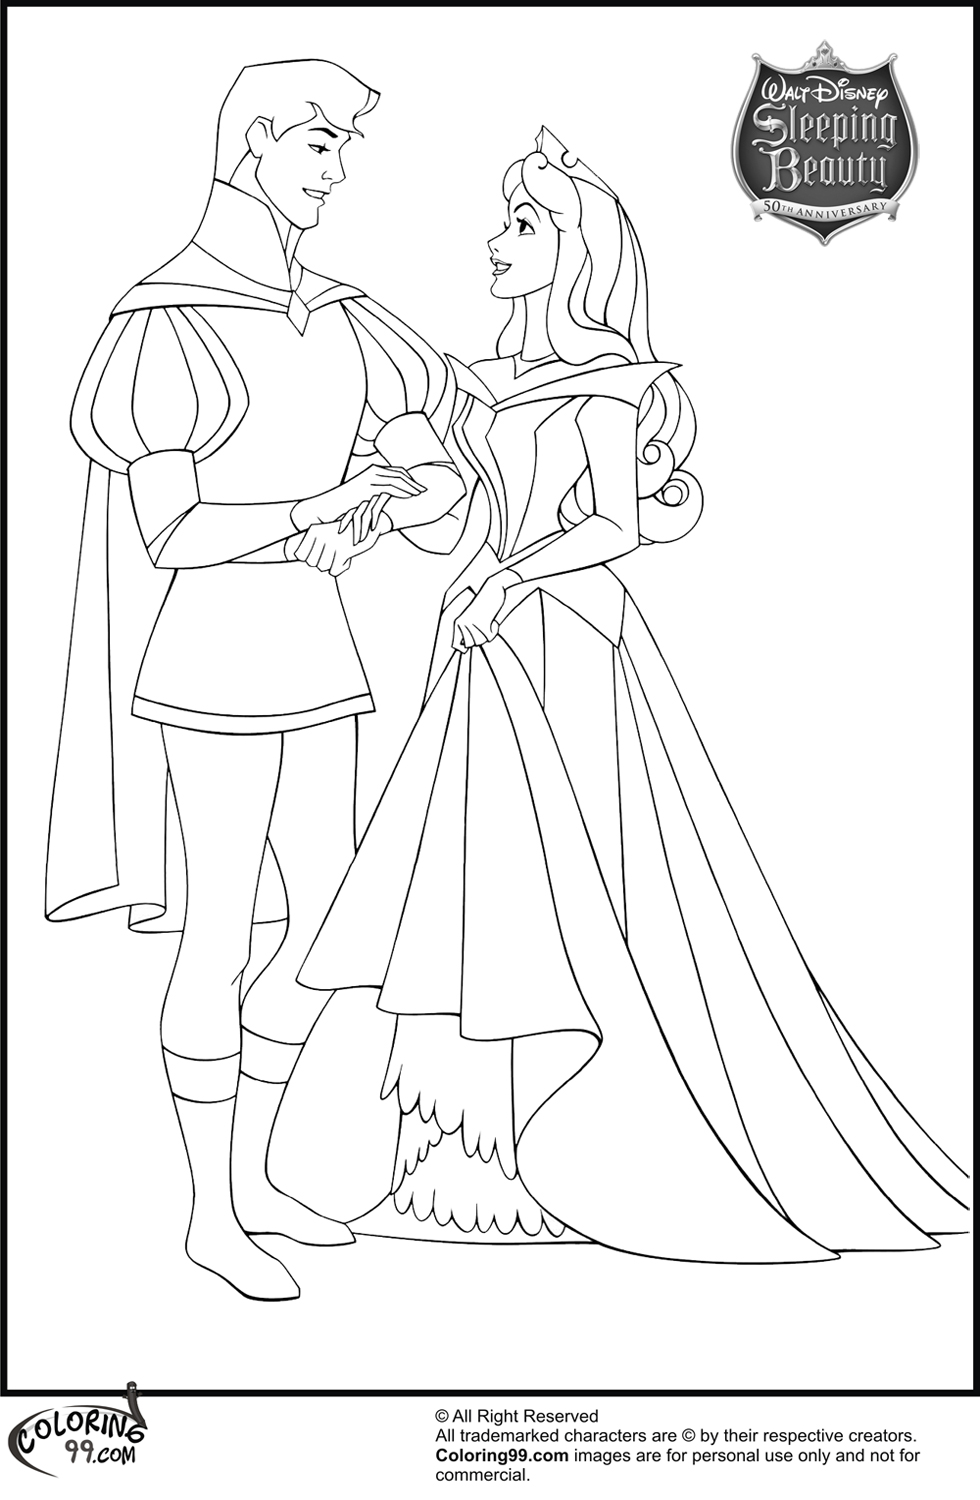 Disney Princess Aurora Coloring Pages | Minister Coloring